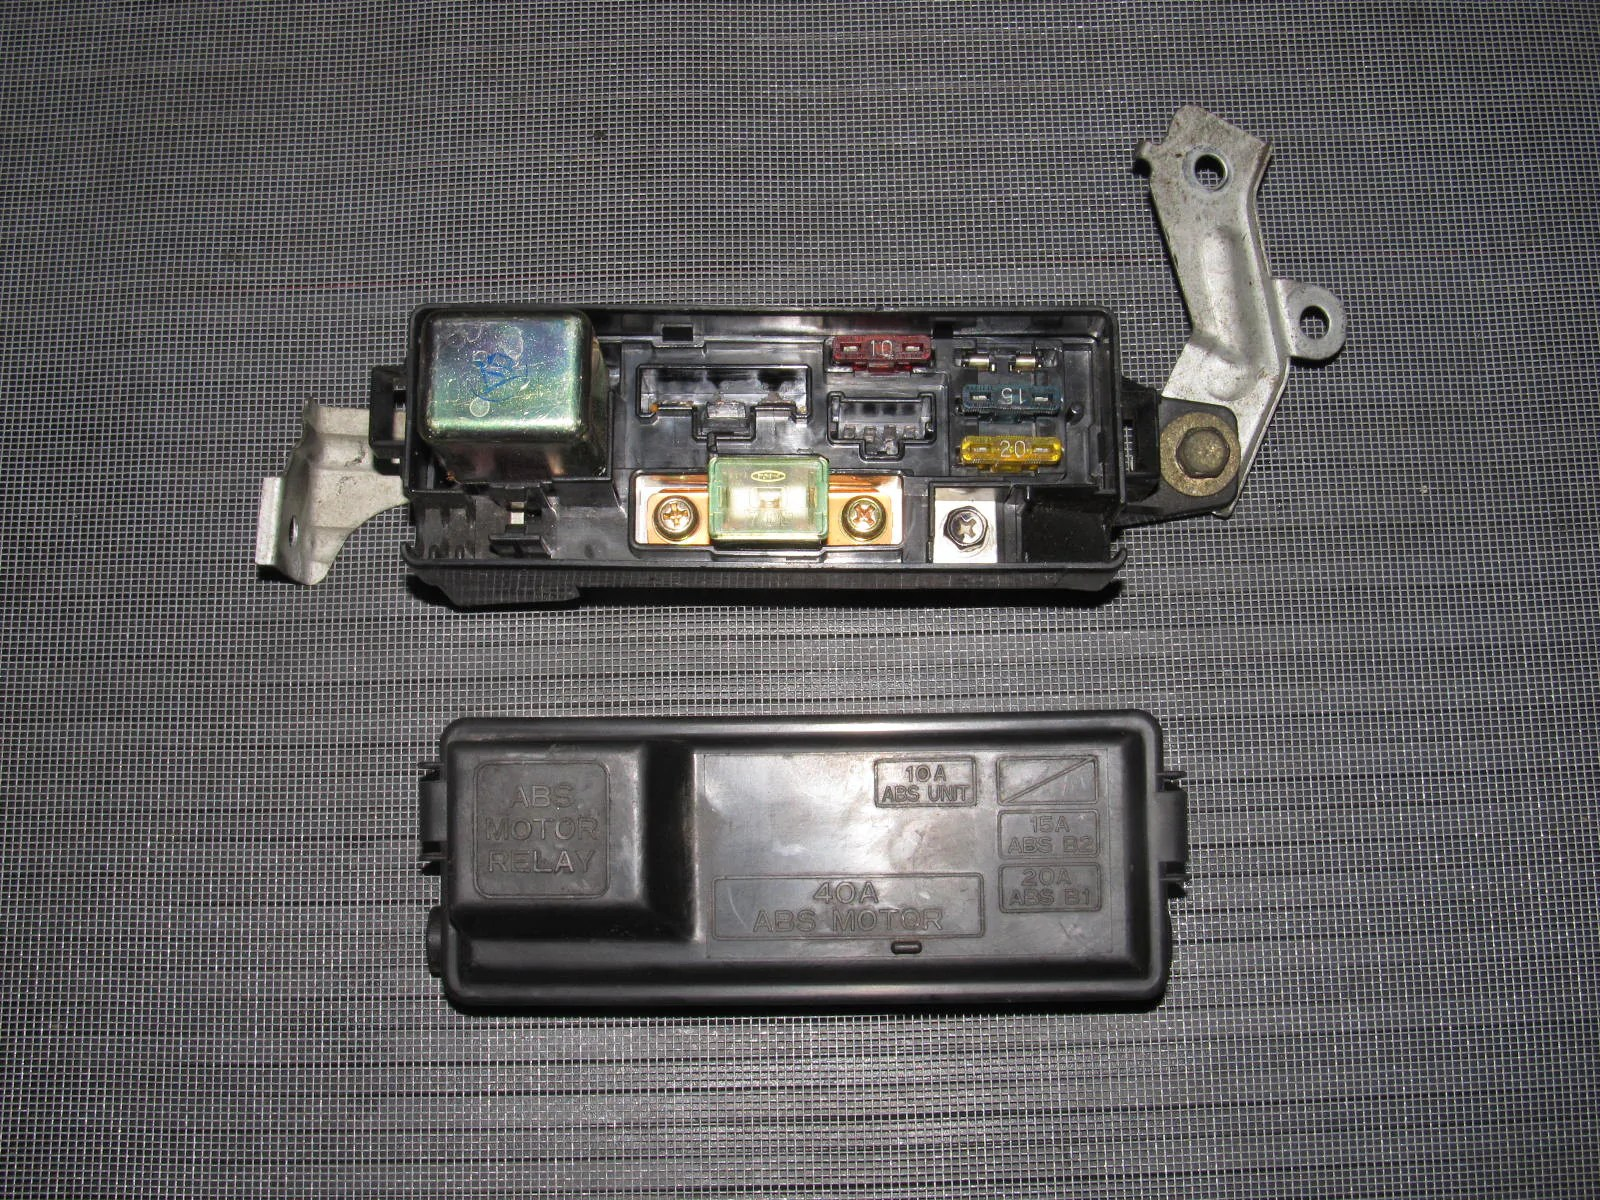 integra abs fuse box trusted wiring diagram online mazda 3 fuse box integra abs fuse box [ 1600 x 1200 Pixel ]